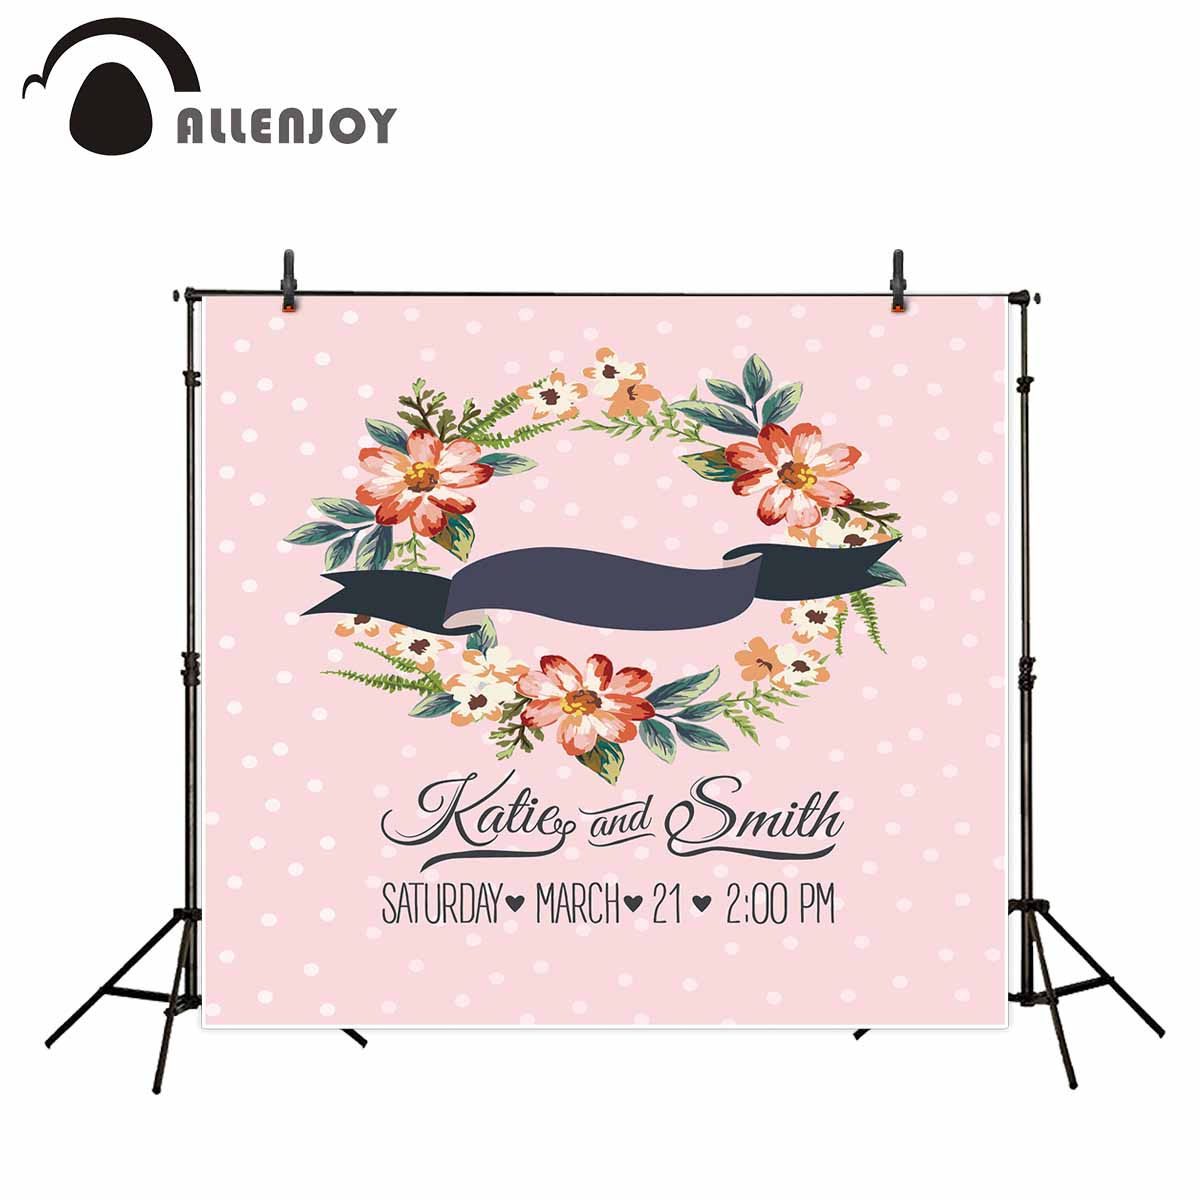 Allenjoy photo background wedding backdrop flowers Pink dots custom background camera fotografica profissional vinyl backdrops allenjoy photographic background rainbow sun lawn cloud newborn lovely princess photocall custom camera fotografica